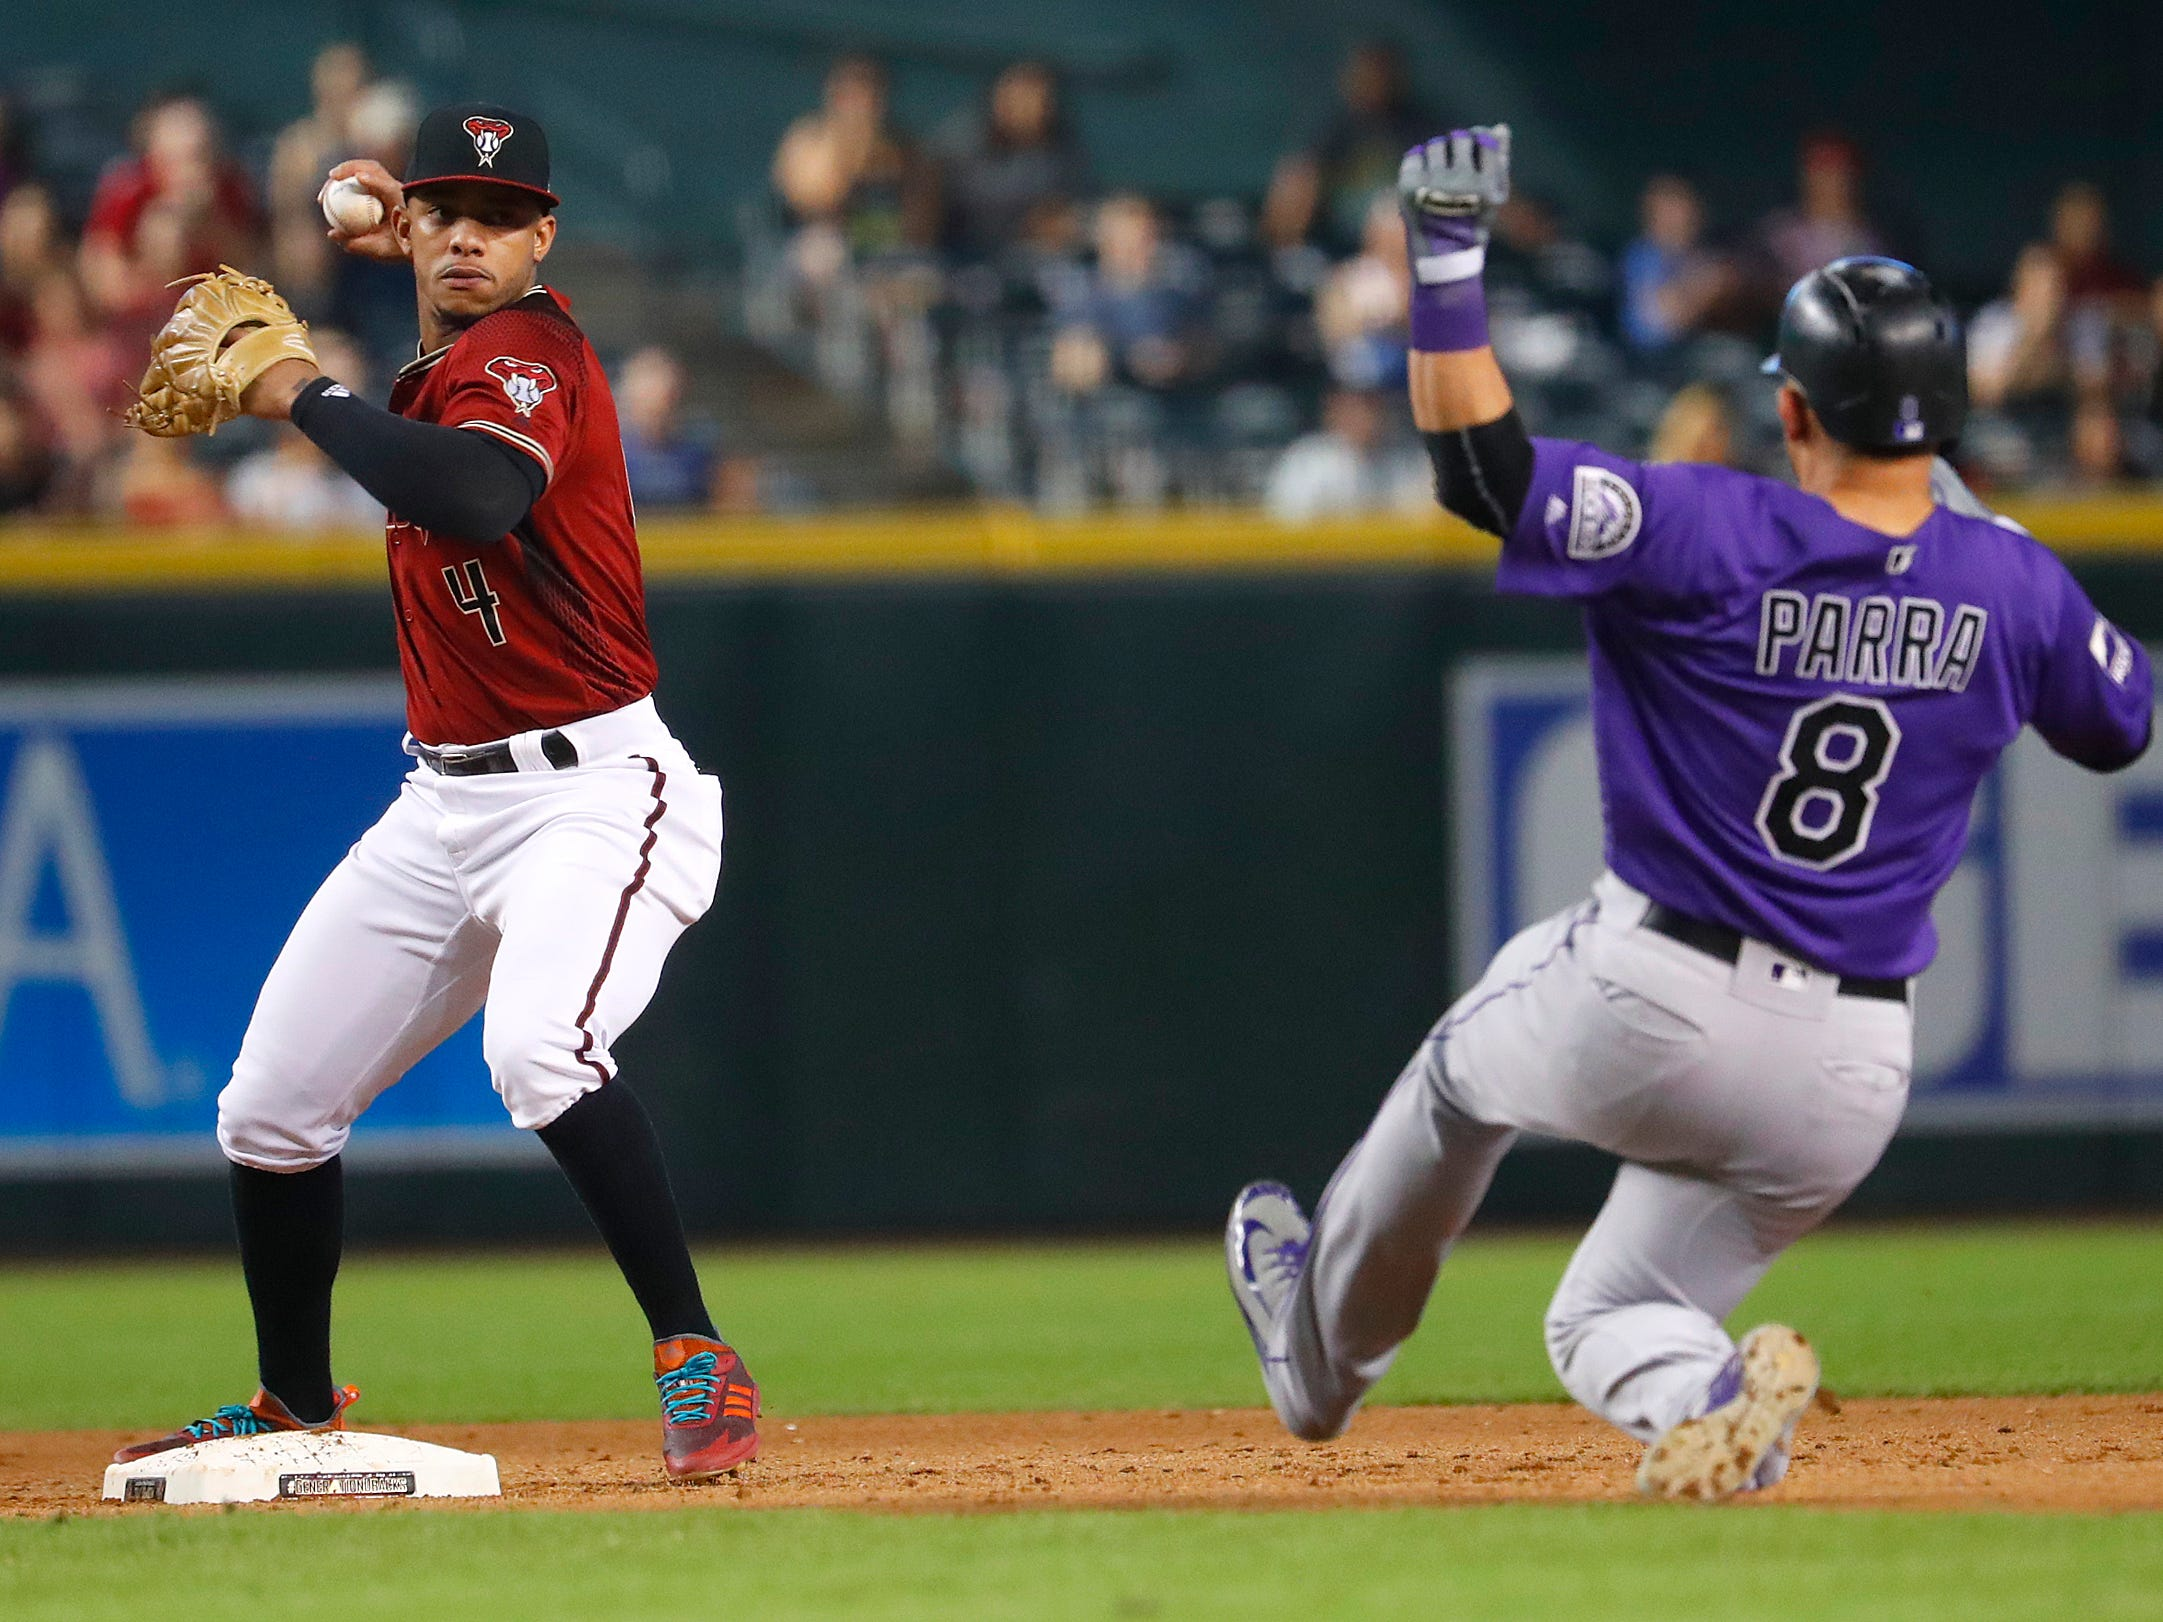 Diamondbacks Ketel Marte (4) records an out at second base on Rockies Gerardo Parra (8) and throws to to first for a double play during the fifth inning at Chase Field on Sept. 23, 2018.